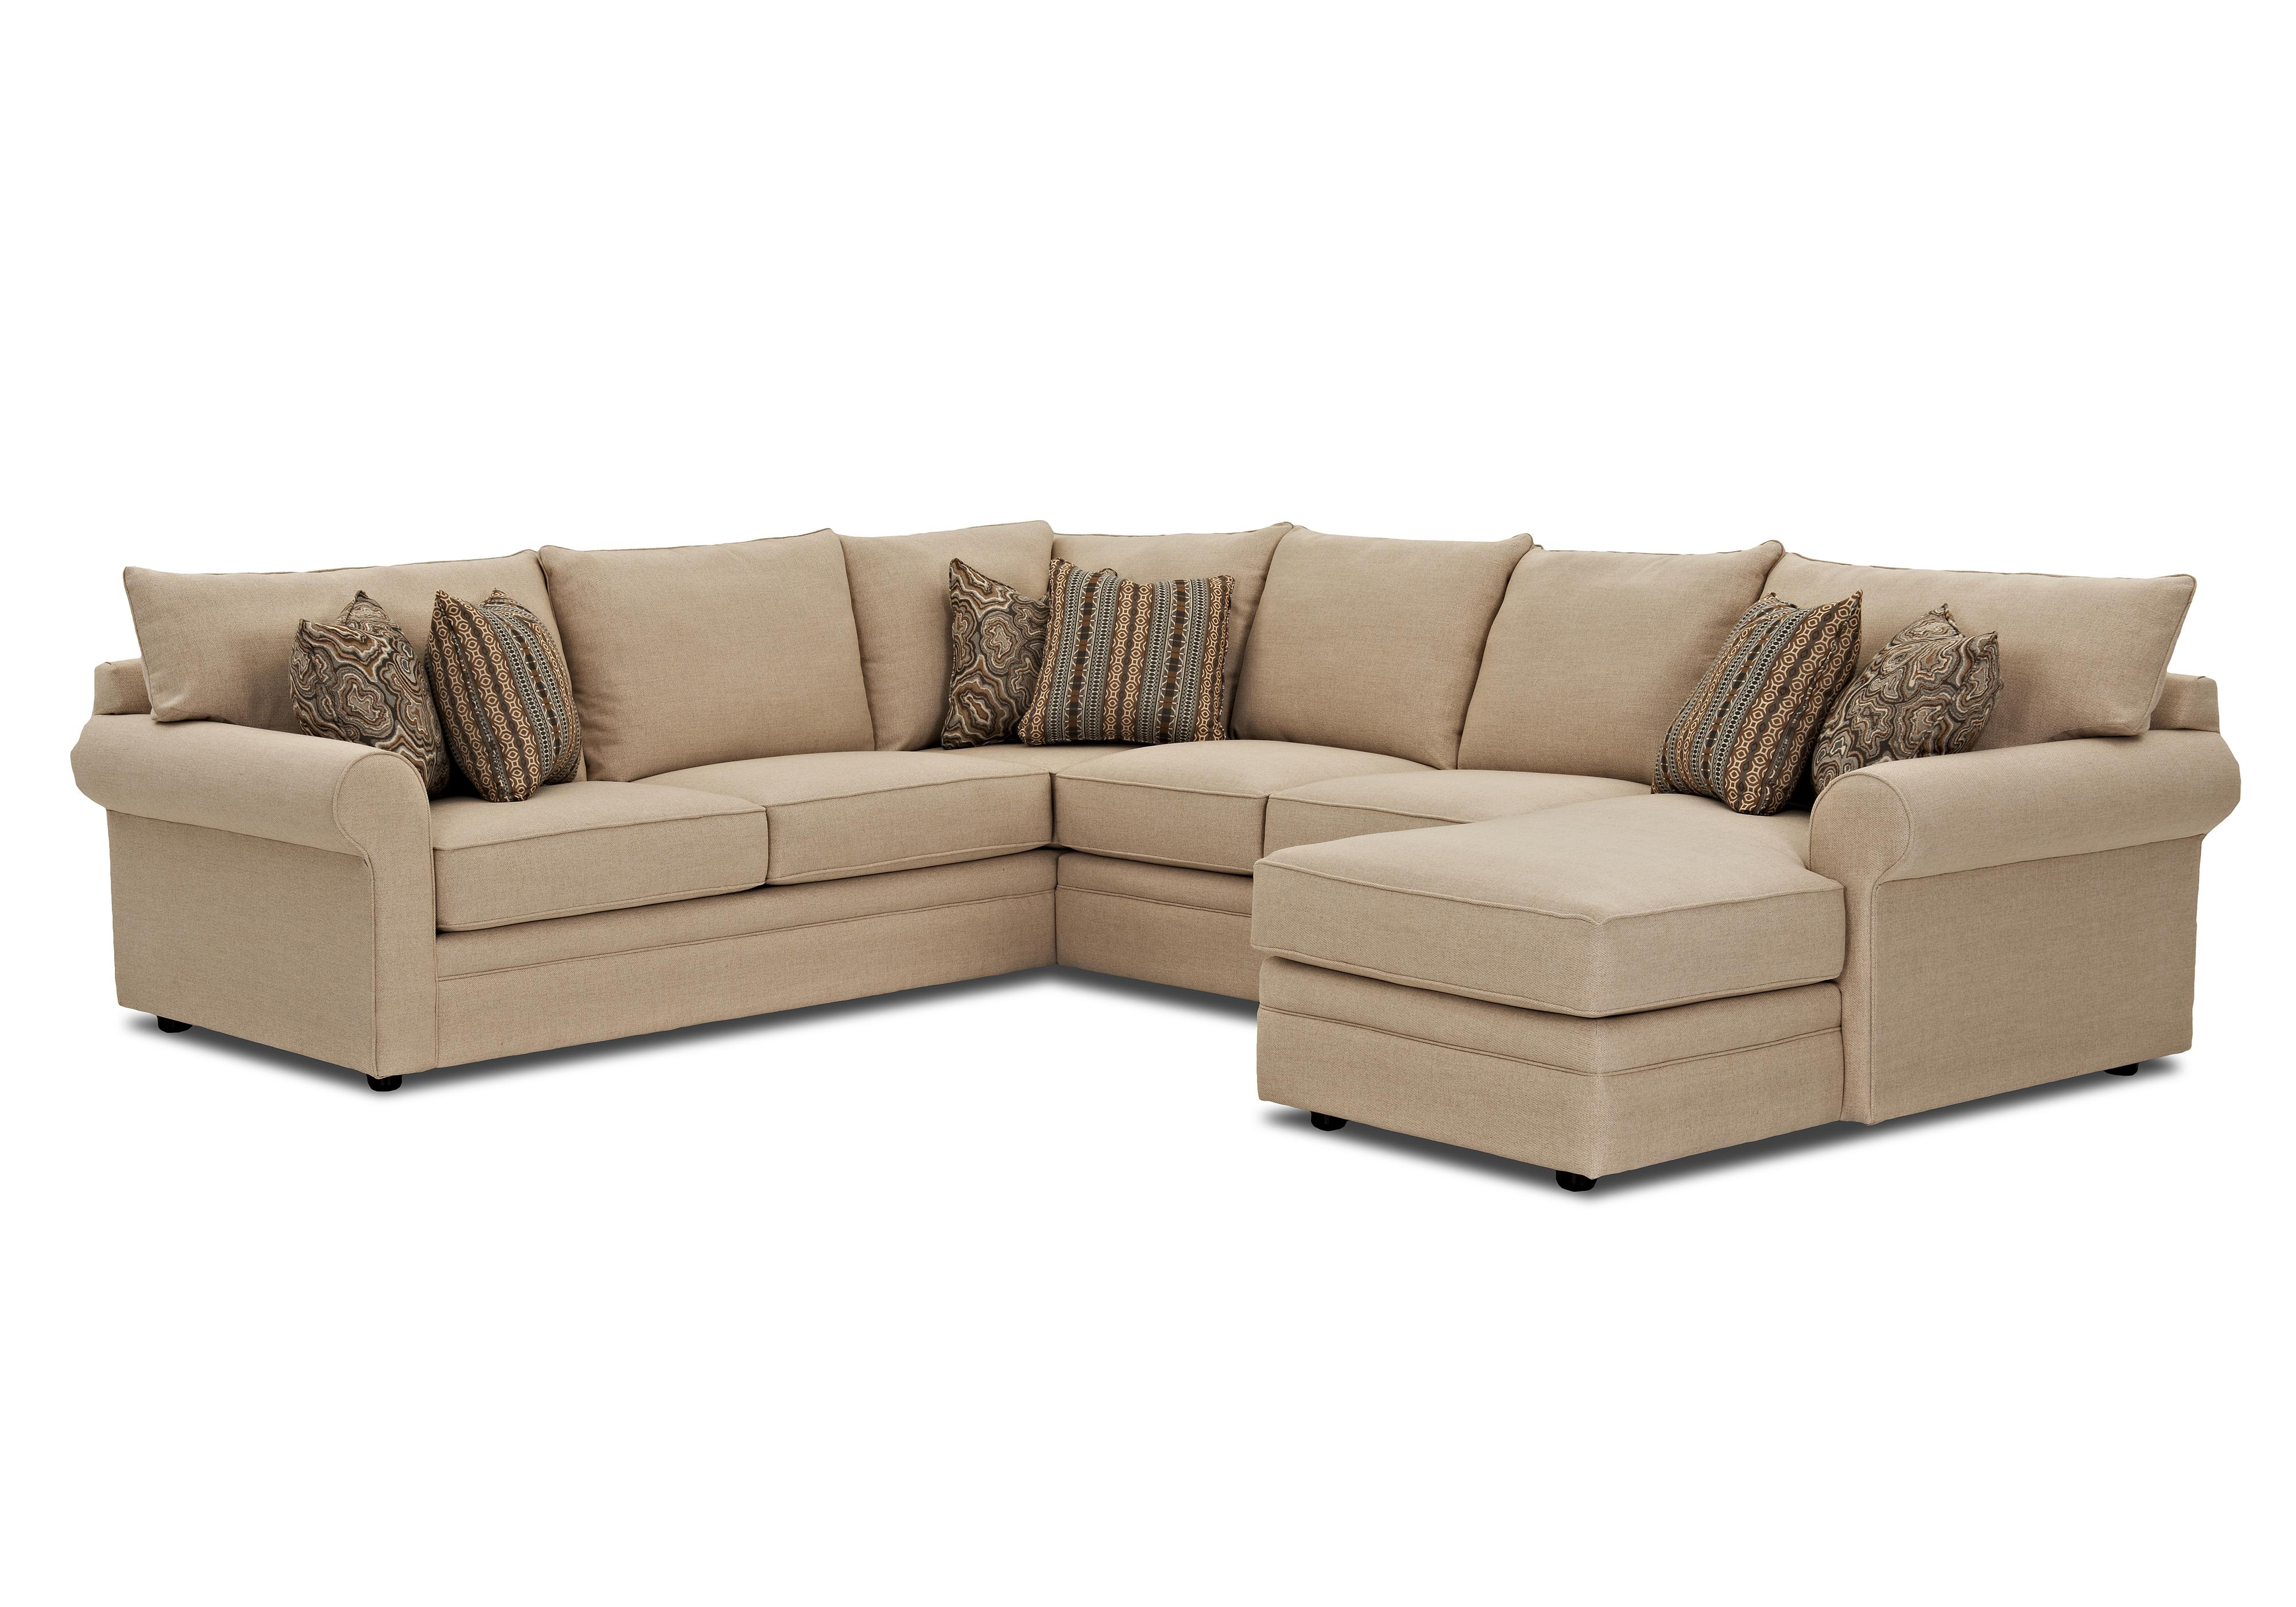 Klaussner comfy casual sectional sofa with raf chaise for Klaussner sofa